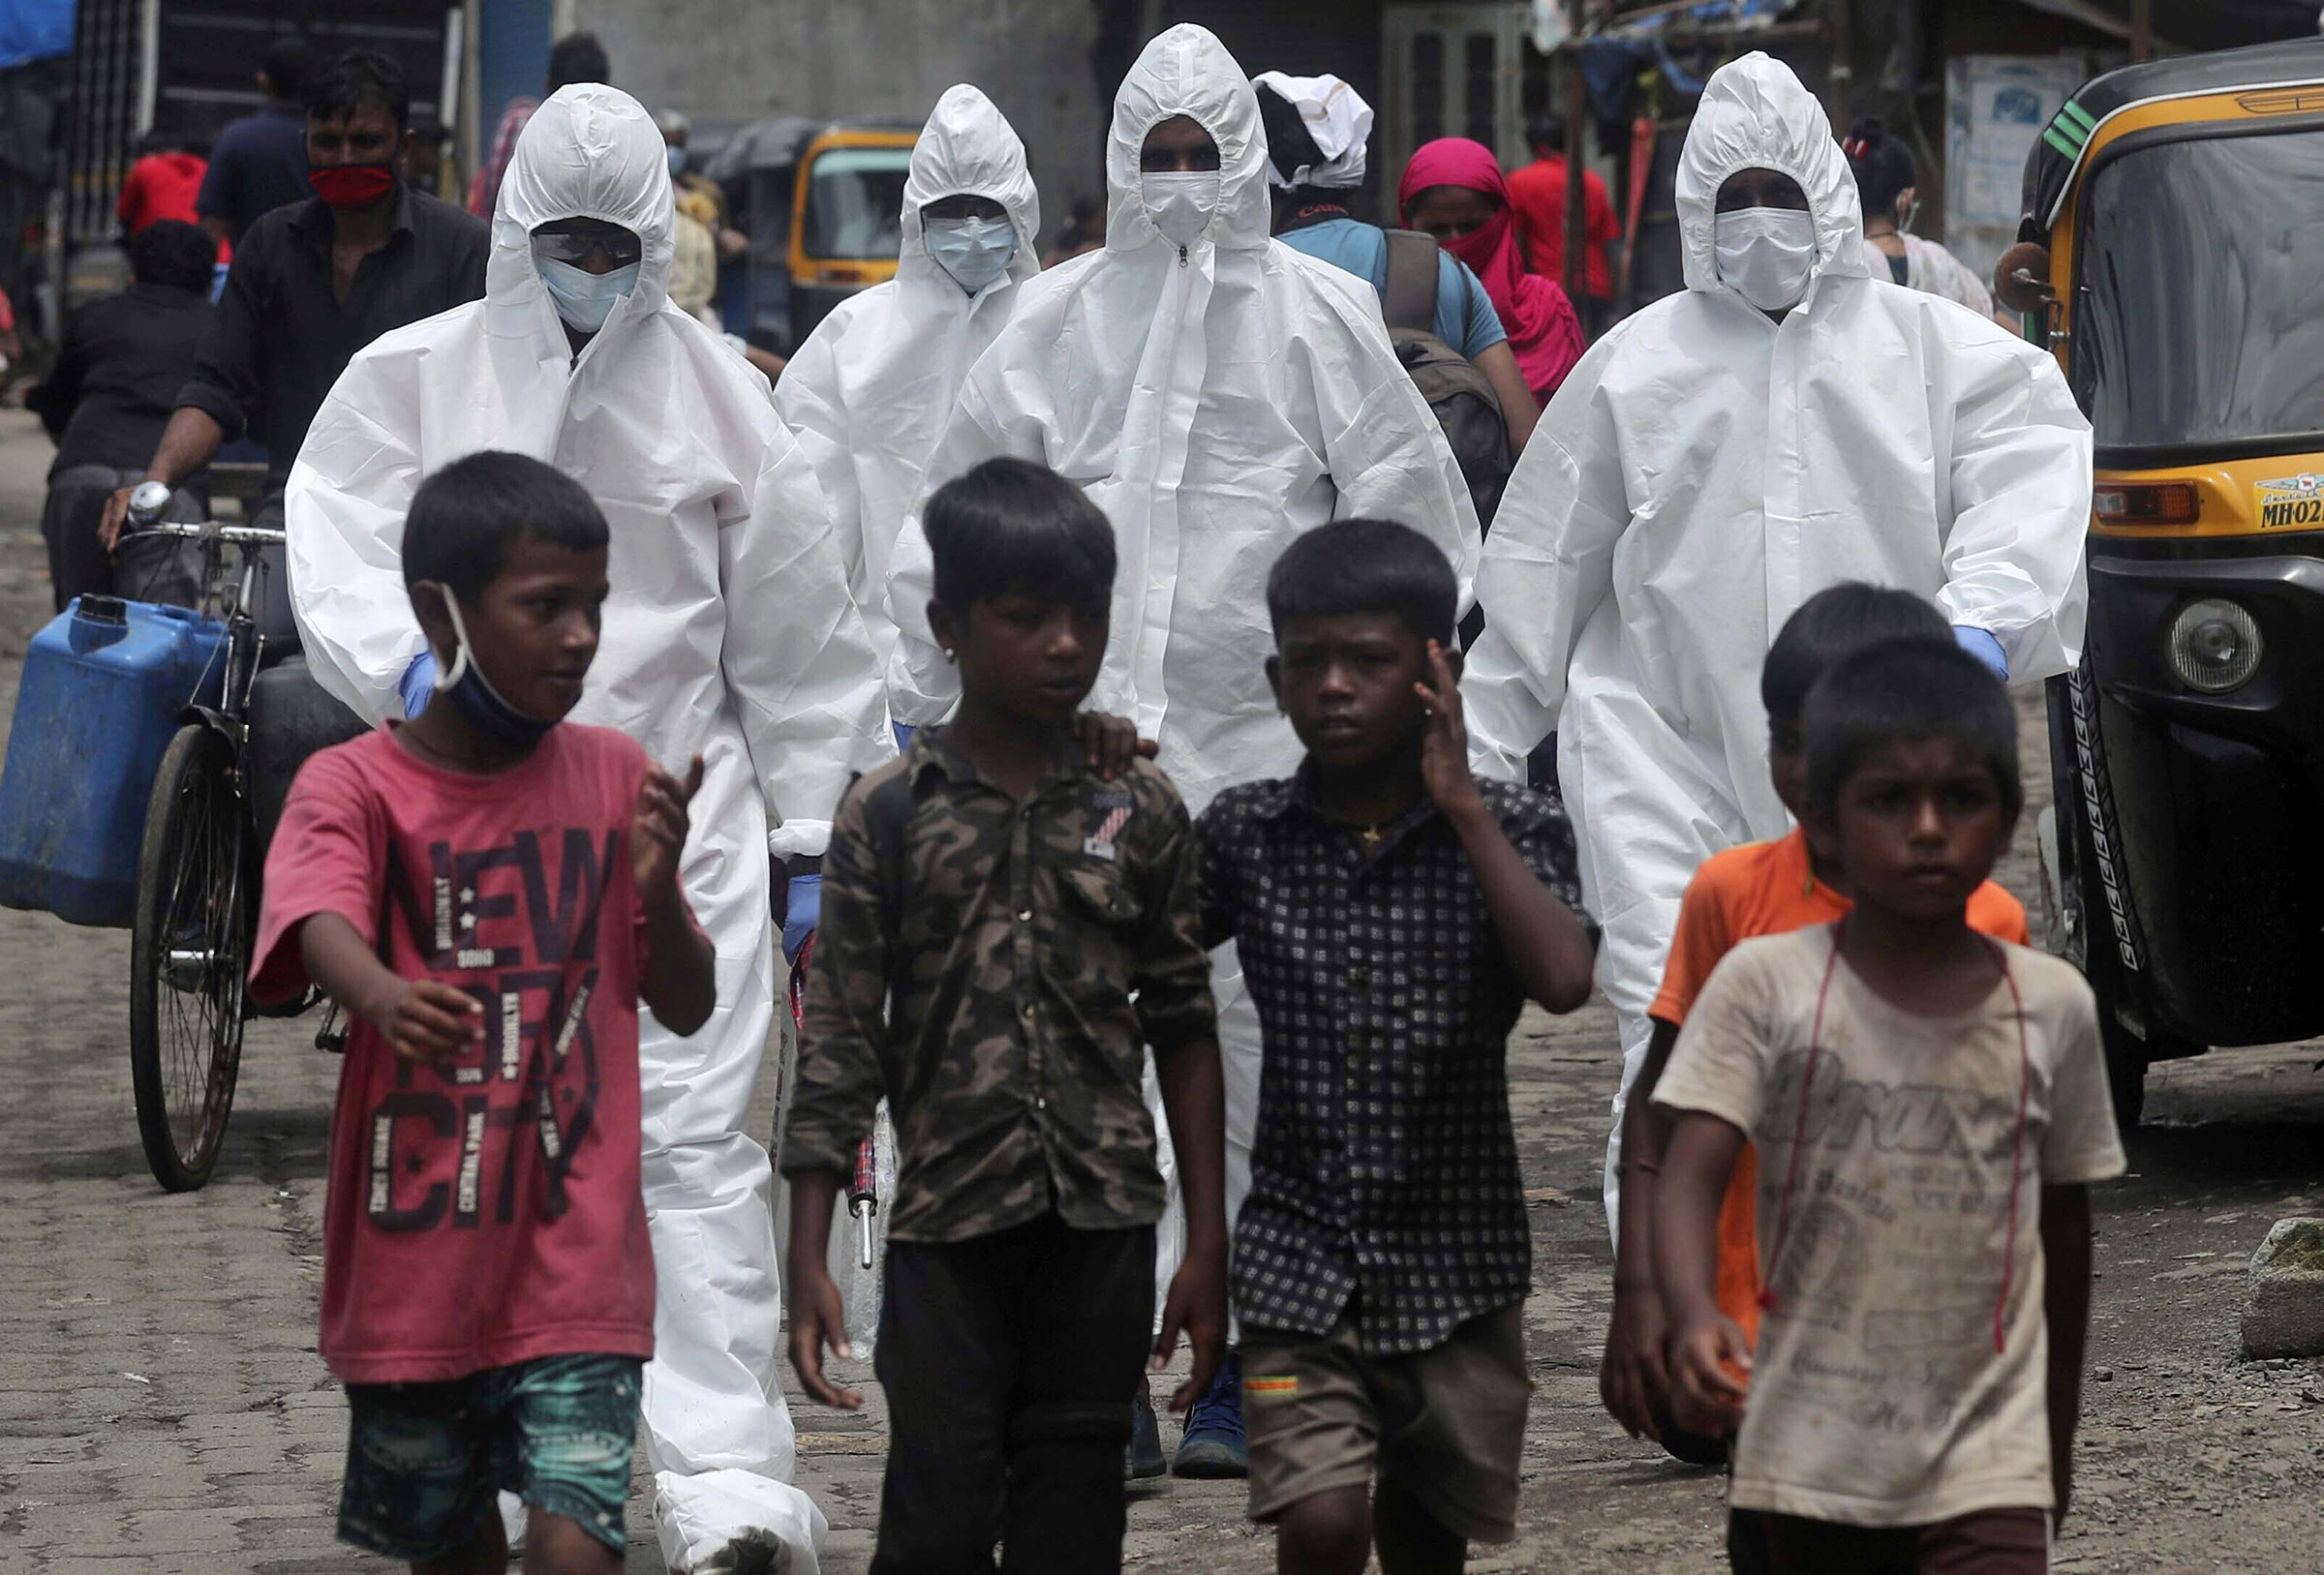 Health workers wearing protective clothing arrive to screen people for Covid-19 symptoms at a slum in Mumbai on Friday.